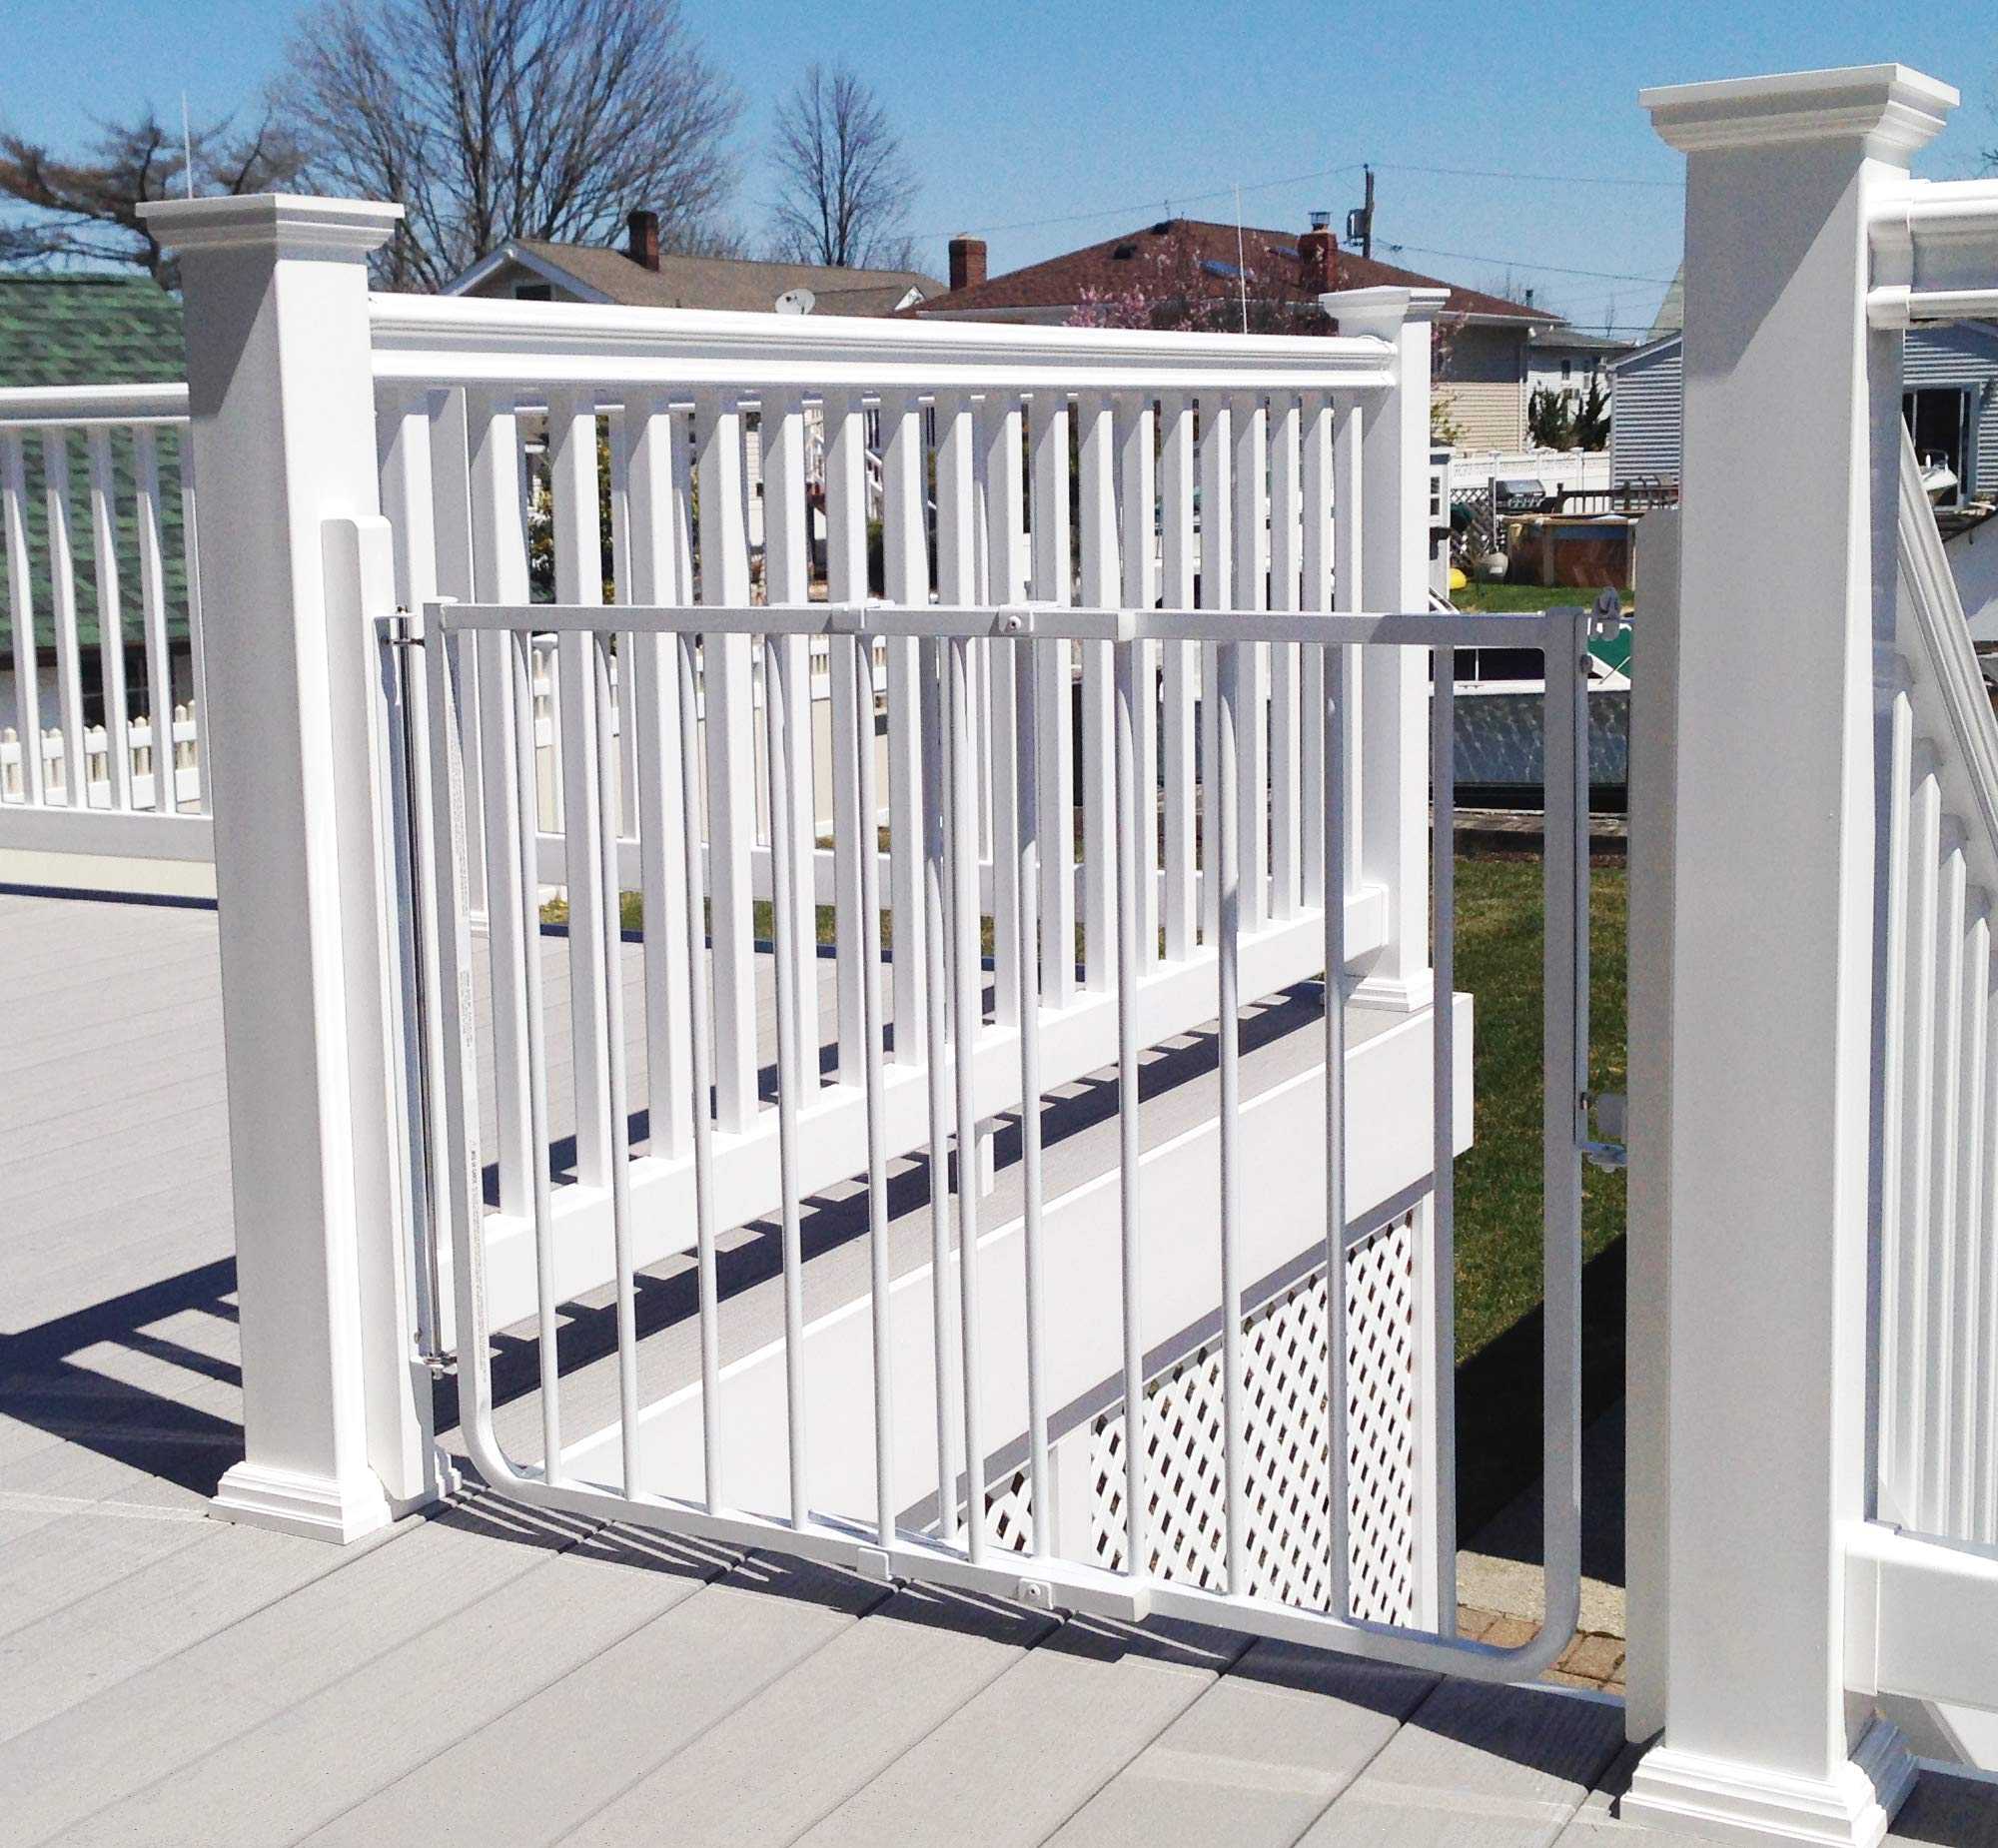 Cardinal Gates Stairway Special Outdoor Child Safety Gate /Model:SS30-ODWH-C /Designed for top of stairway use / Color: White by Cardinal Gates (Image #2)